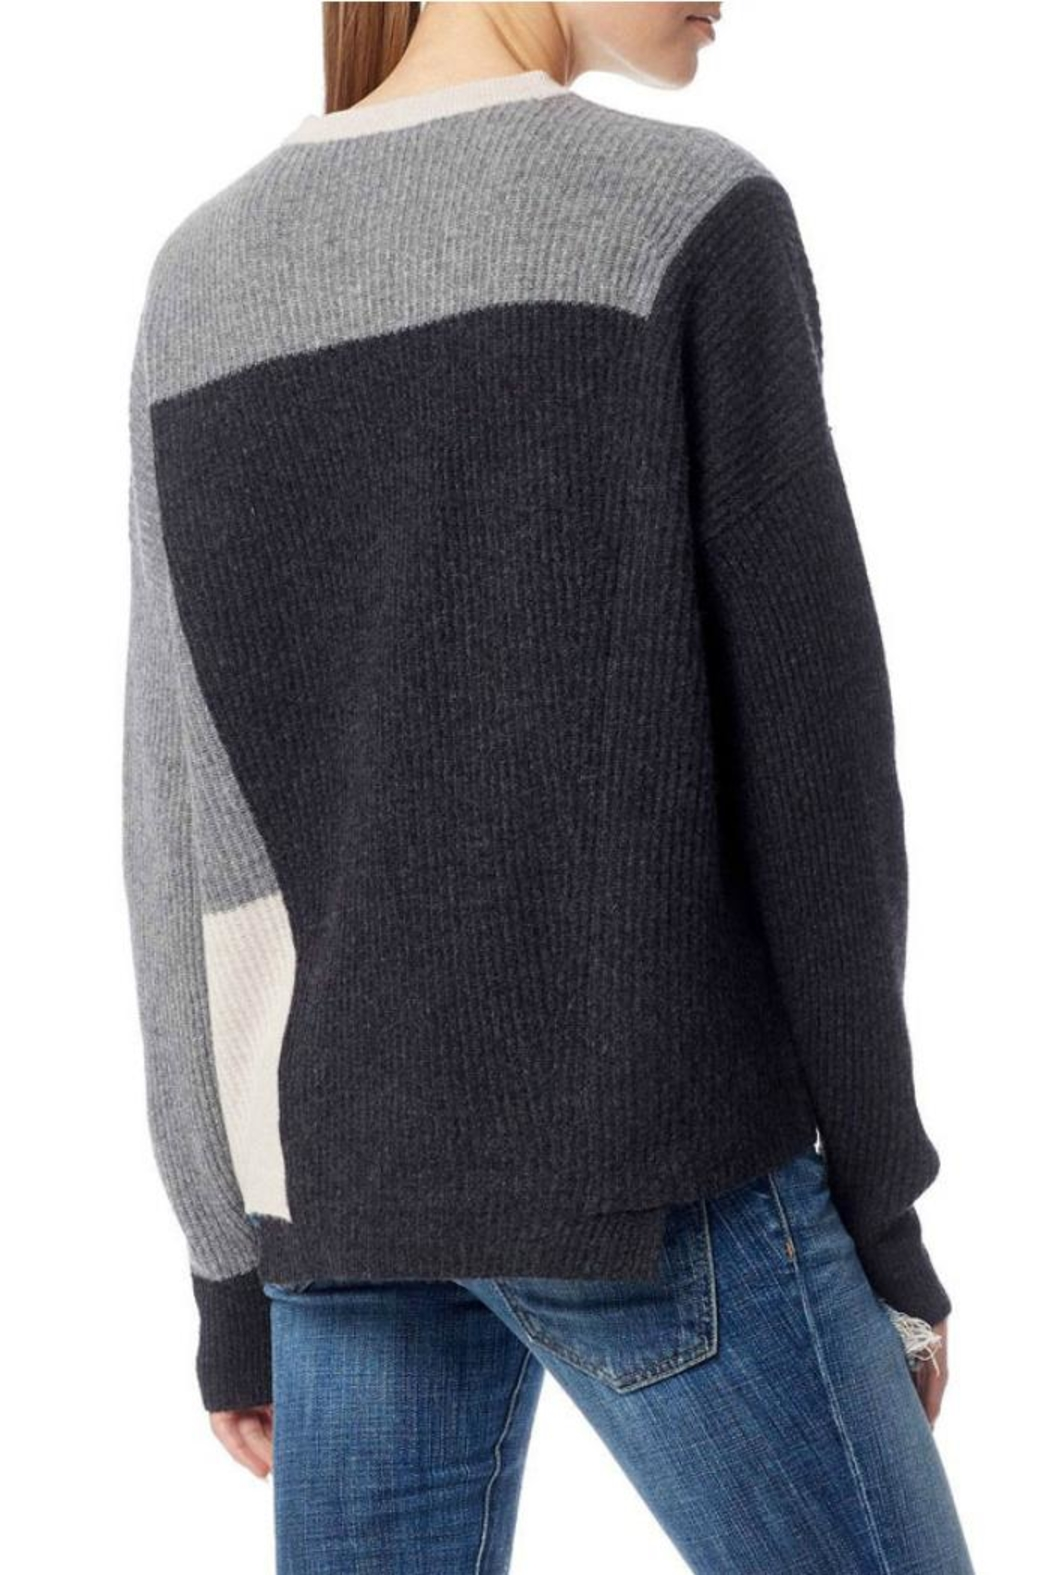 360 Cashmere Akima Sweater - Front Full Image